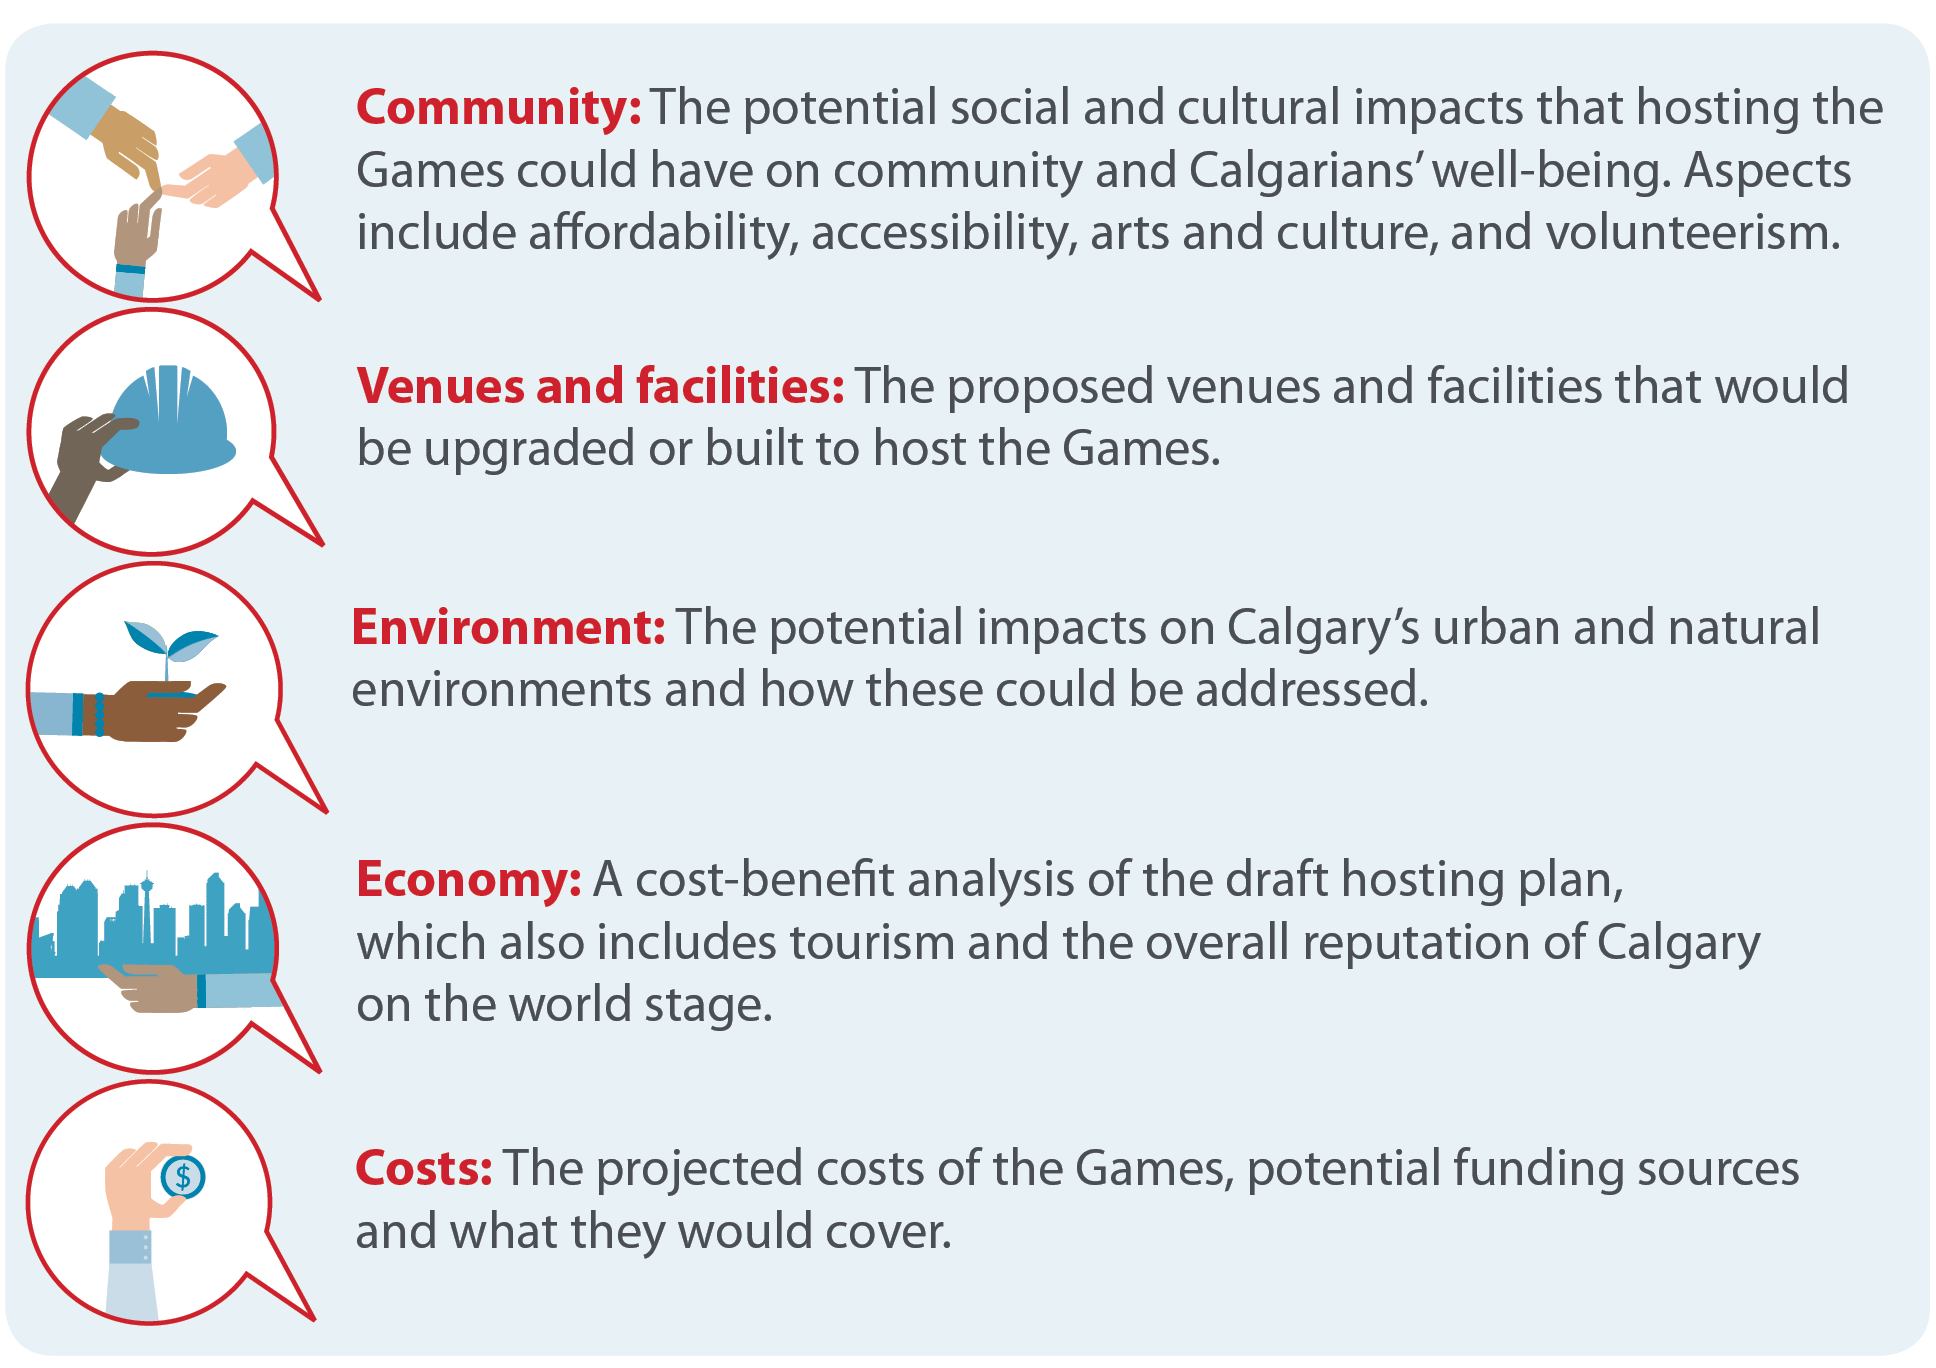 Community, Costs, Economy, Venues and Facilities, and Environment.